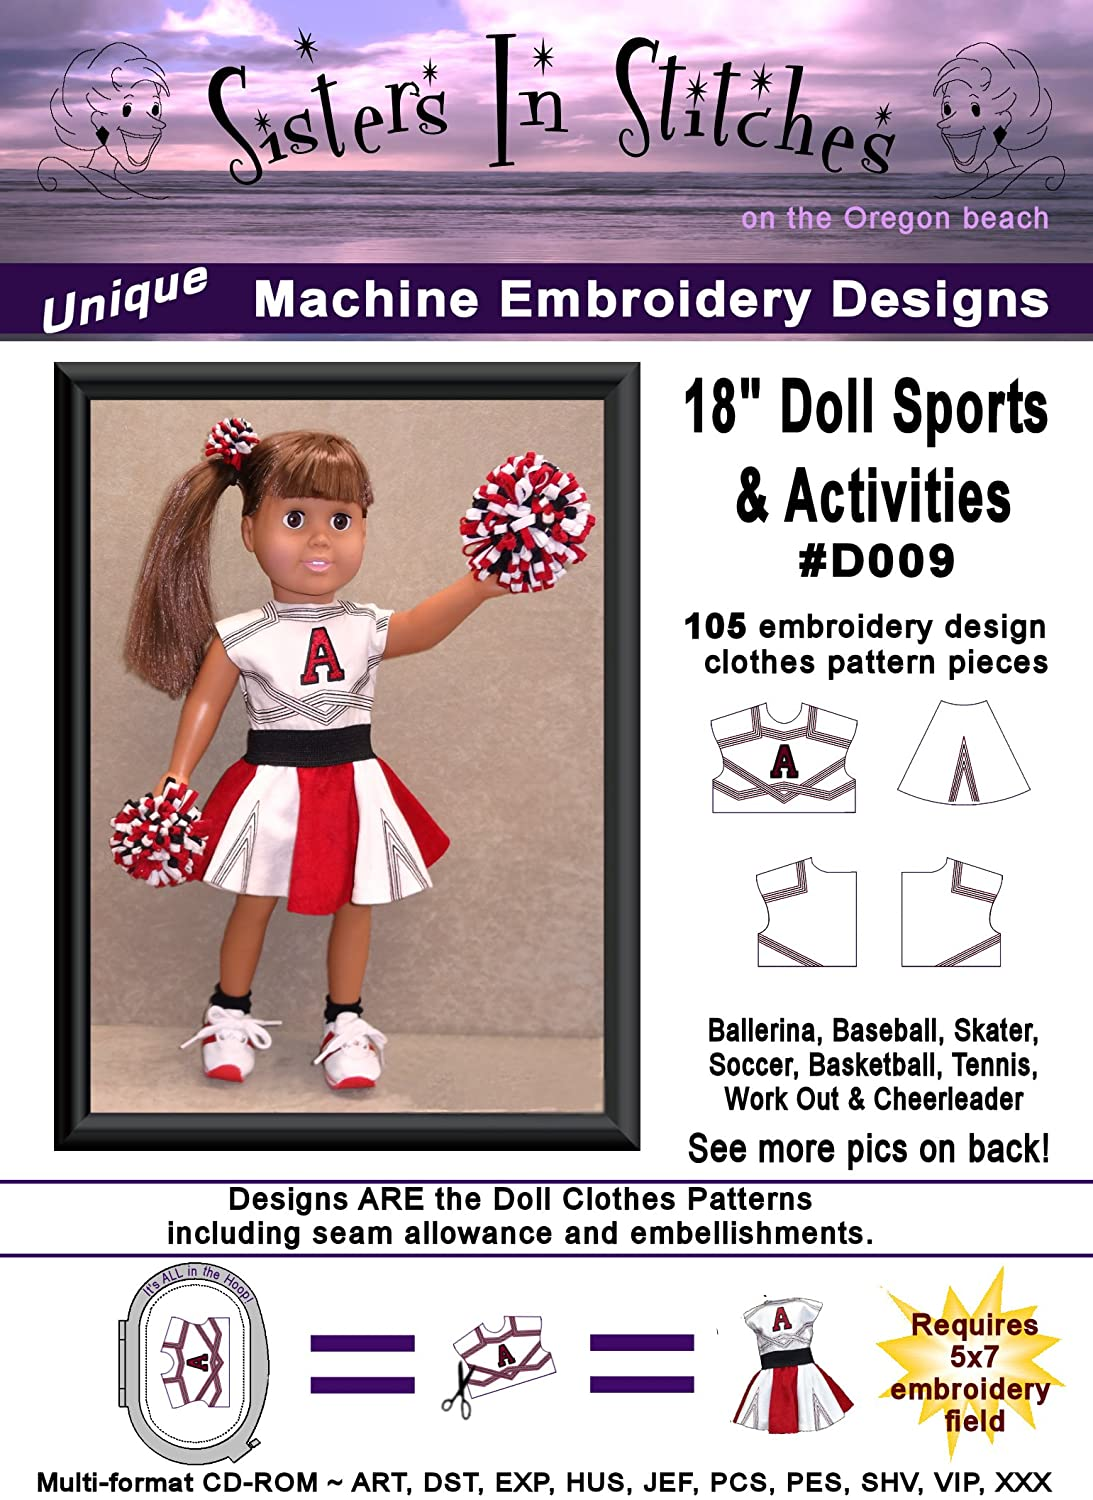 18 Doll Sports & Activities - In the Hoop - Machine Embroidery Designs